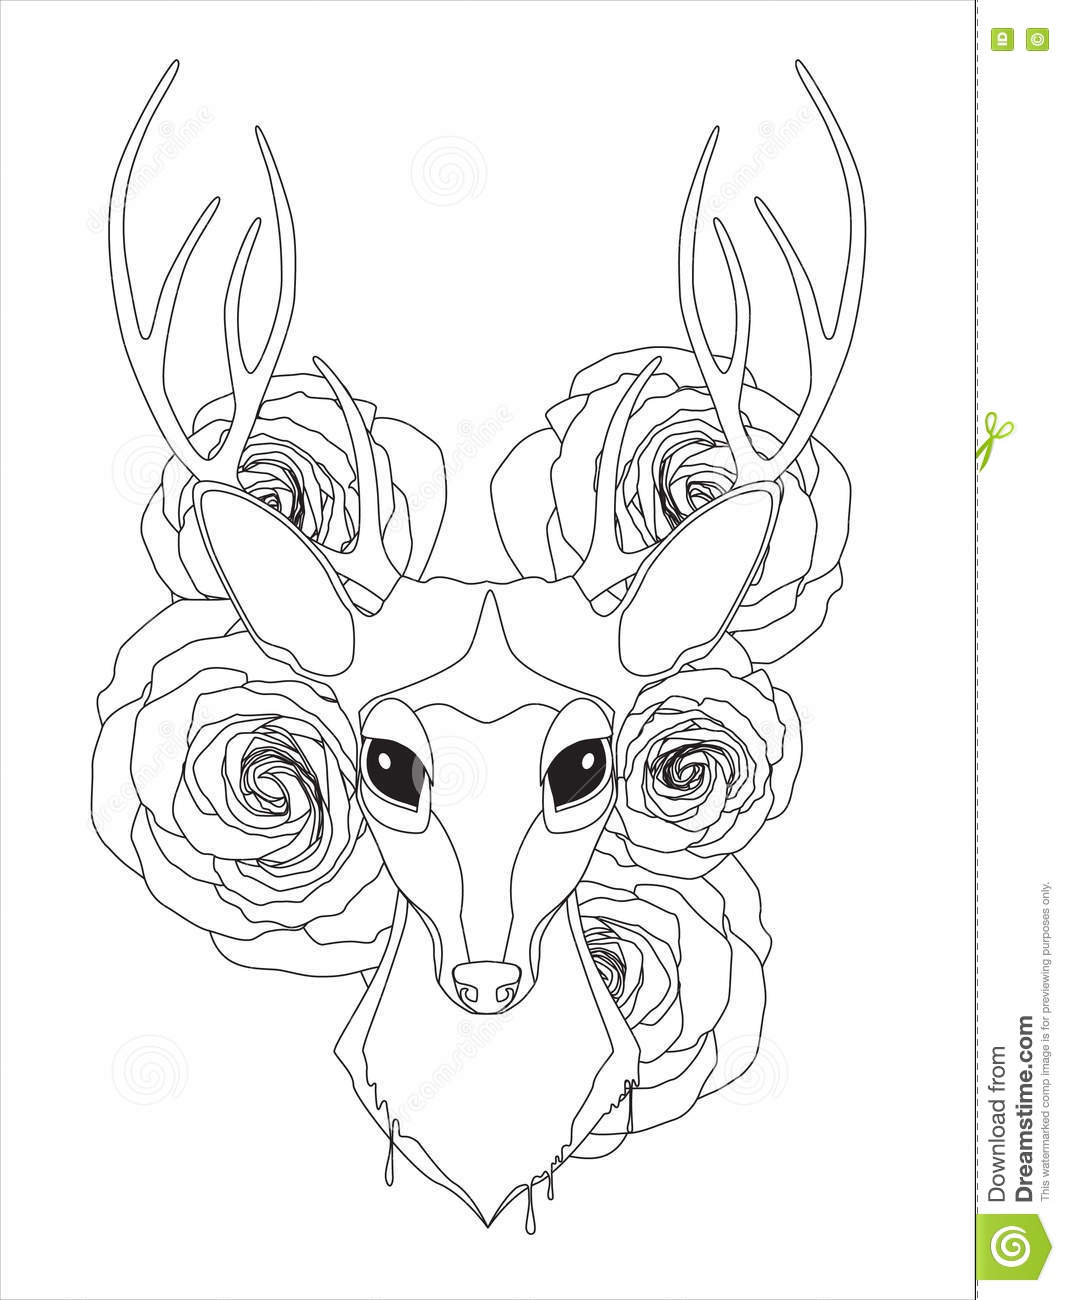 Graceful Deer Coloring Page For Adult In Exquisite Style Stock ...